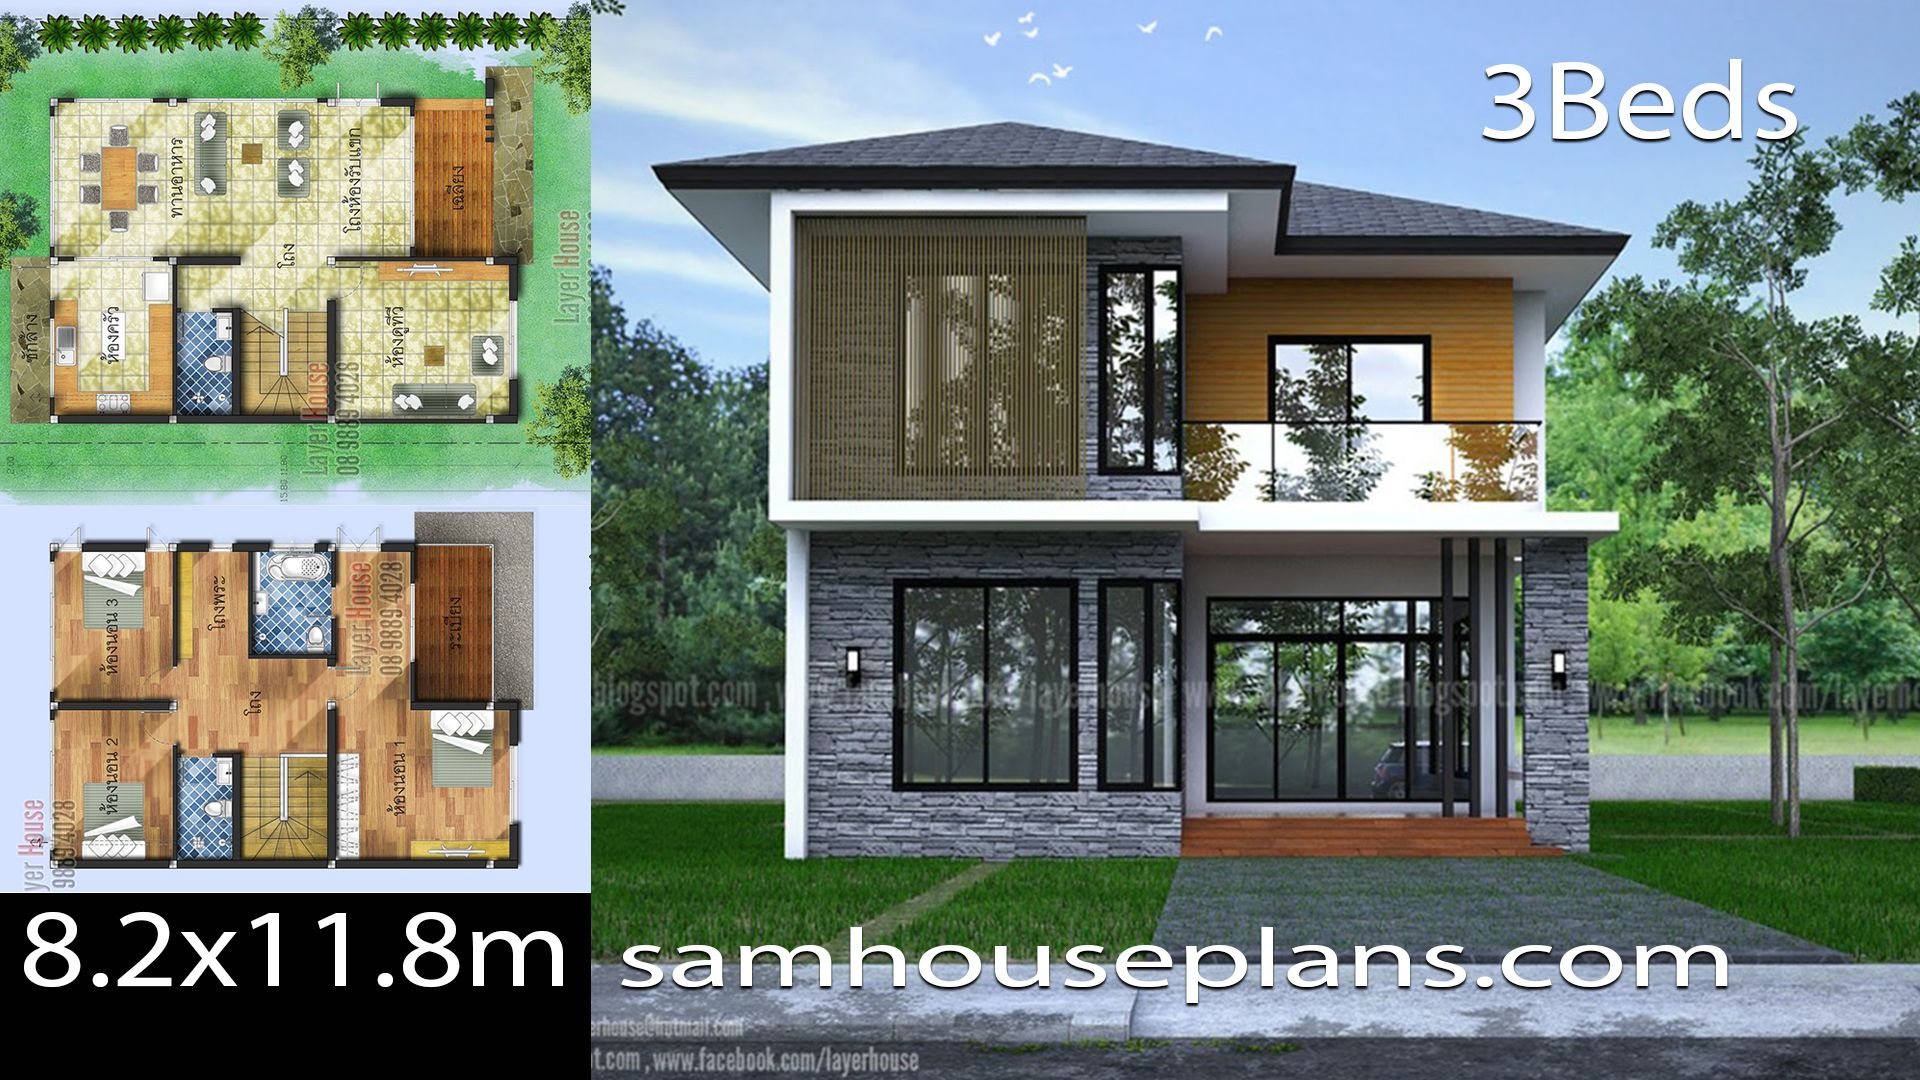 House Plans Idea 8 2x11 8m With 3 Bedrooms In 2020 Architectural House Plans House Plans Two Storey House Plans